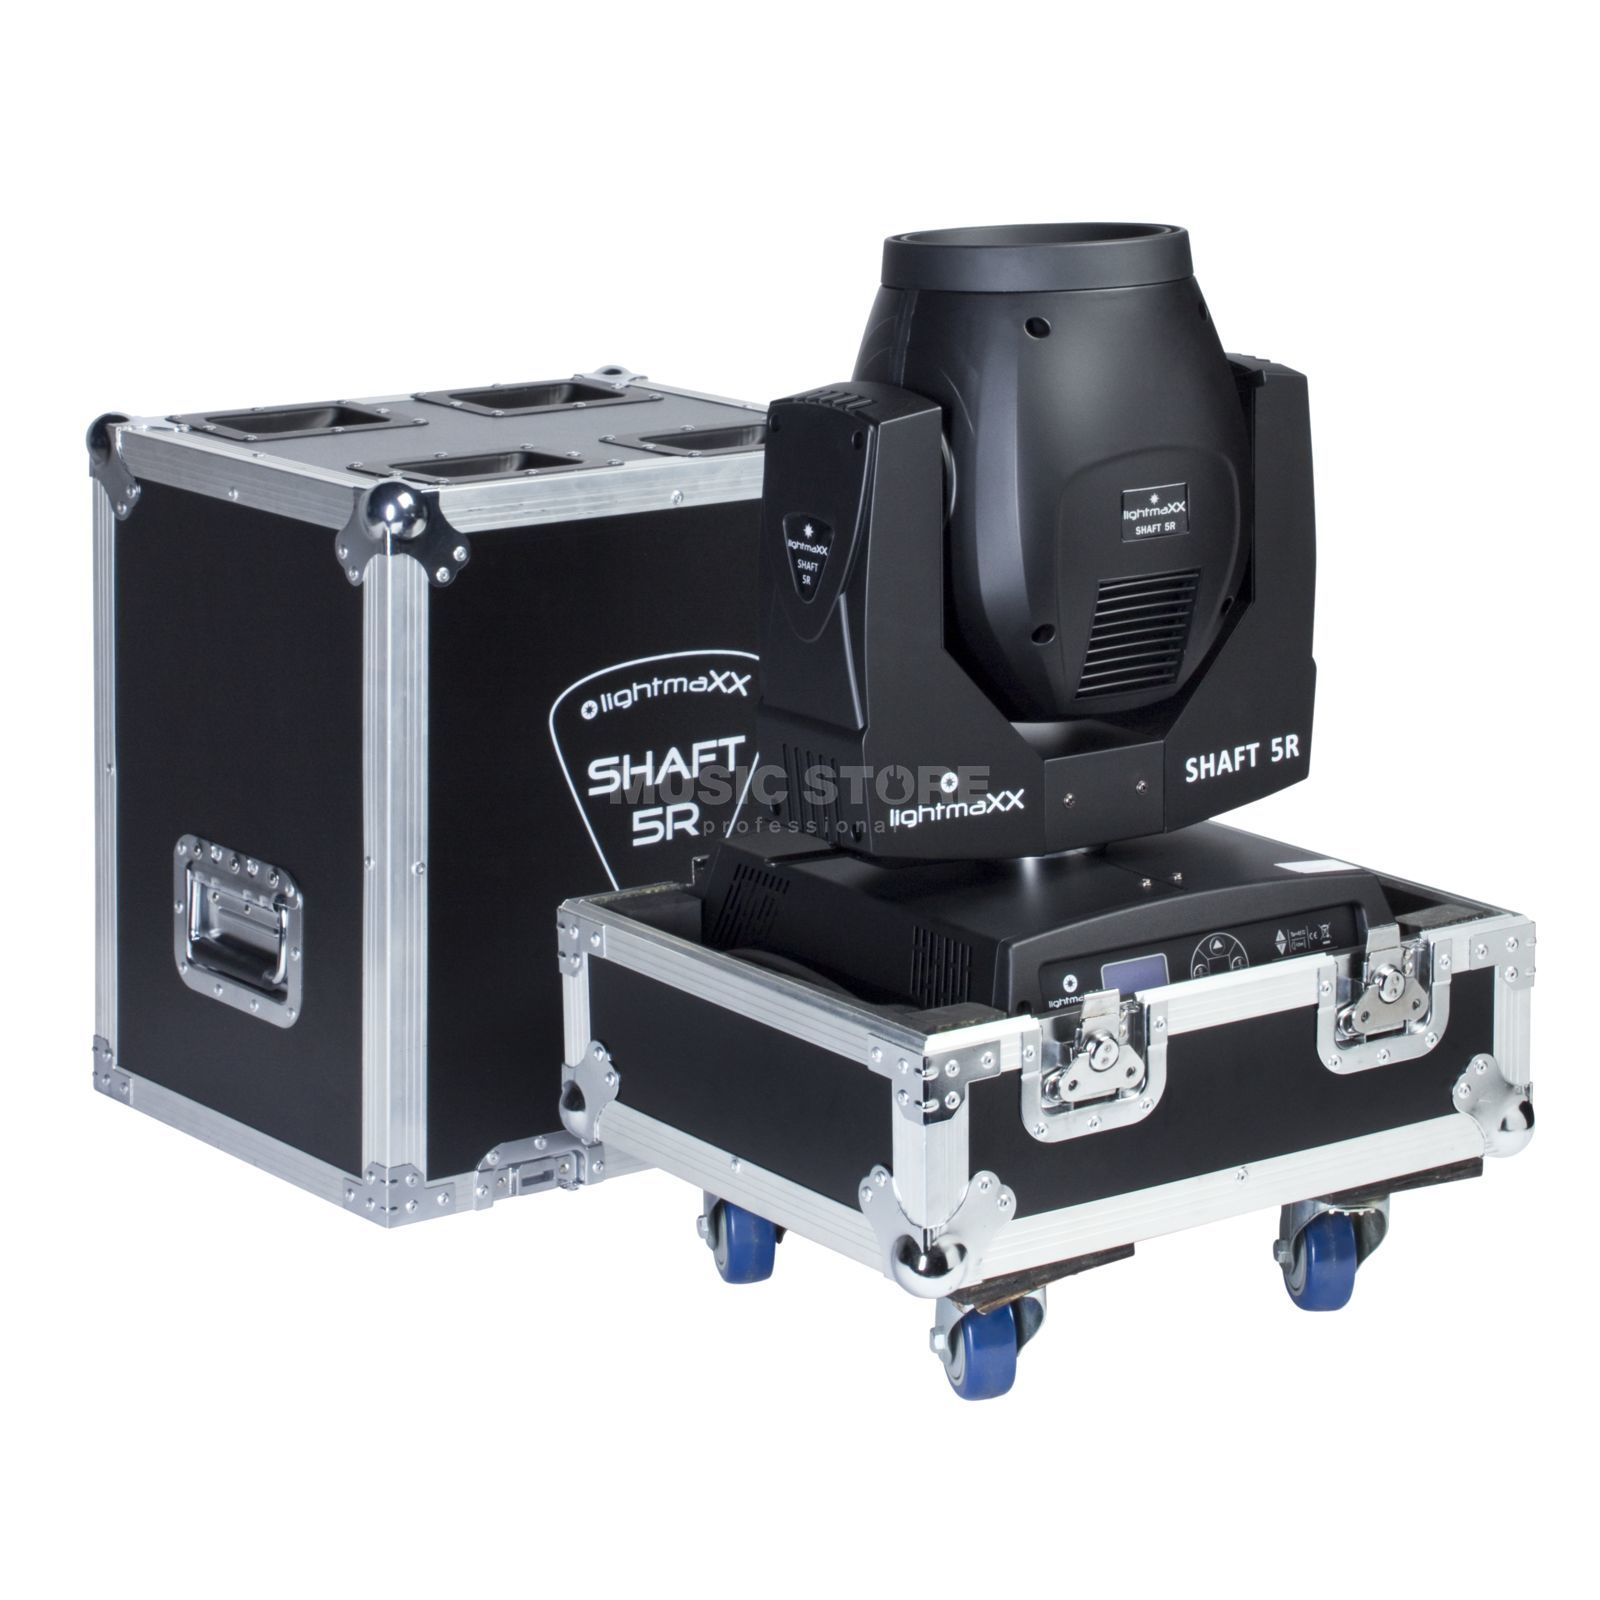 lightmaXX SHAFT 5R inkl. Single Case Beam Moving-Head im Case Produktbild